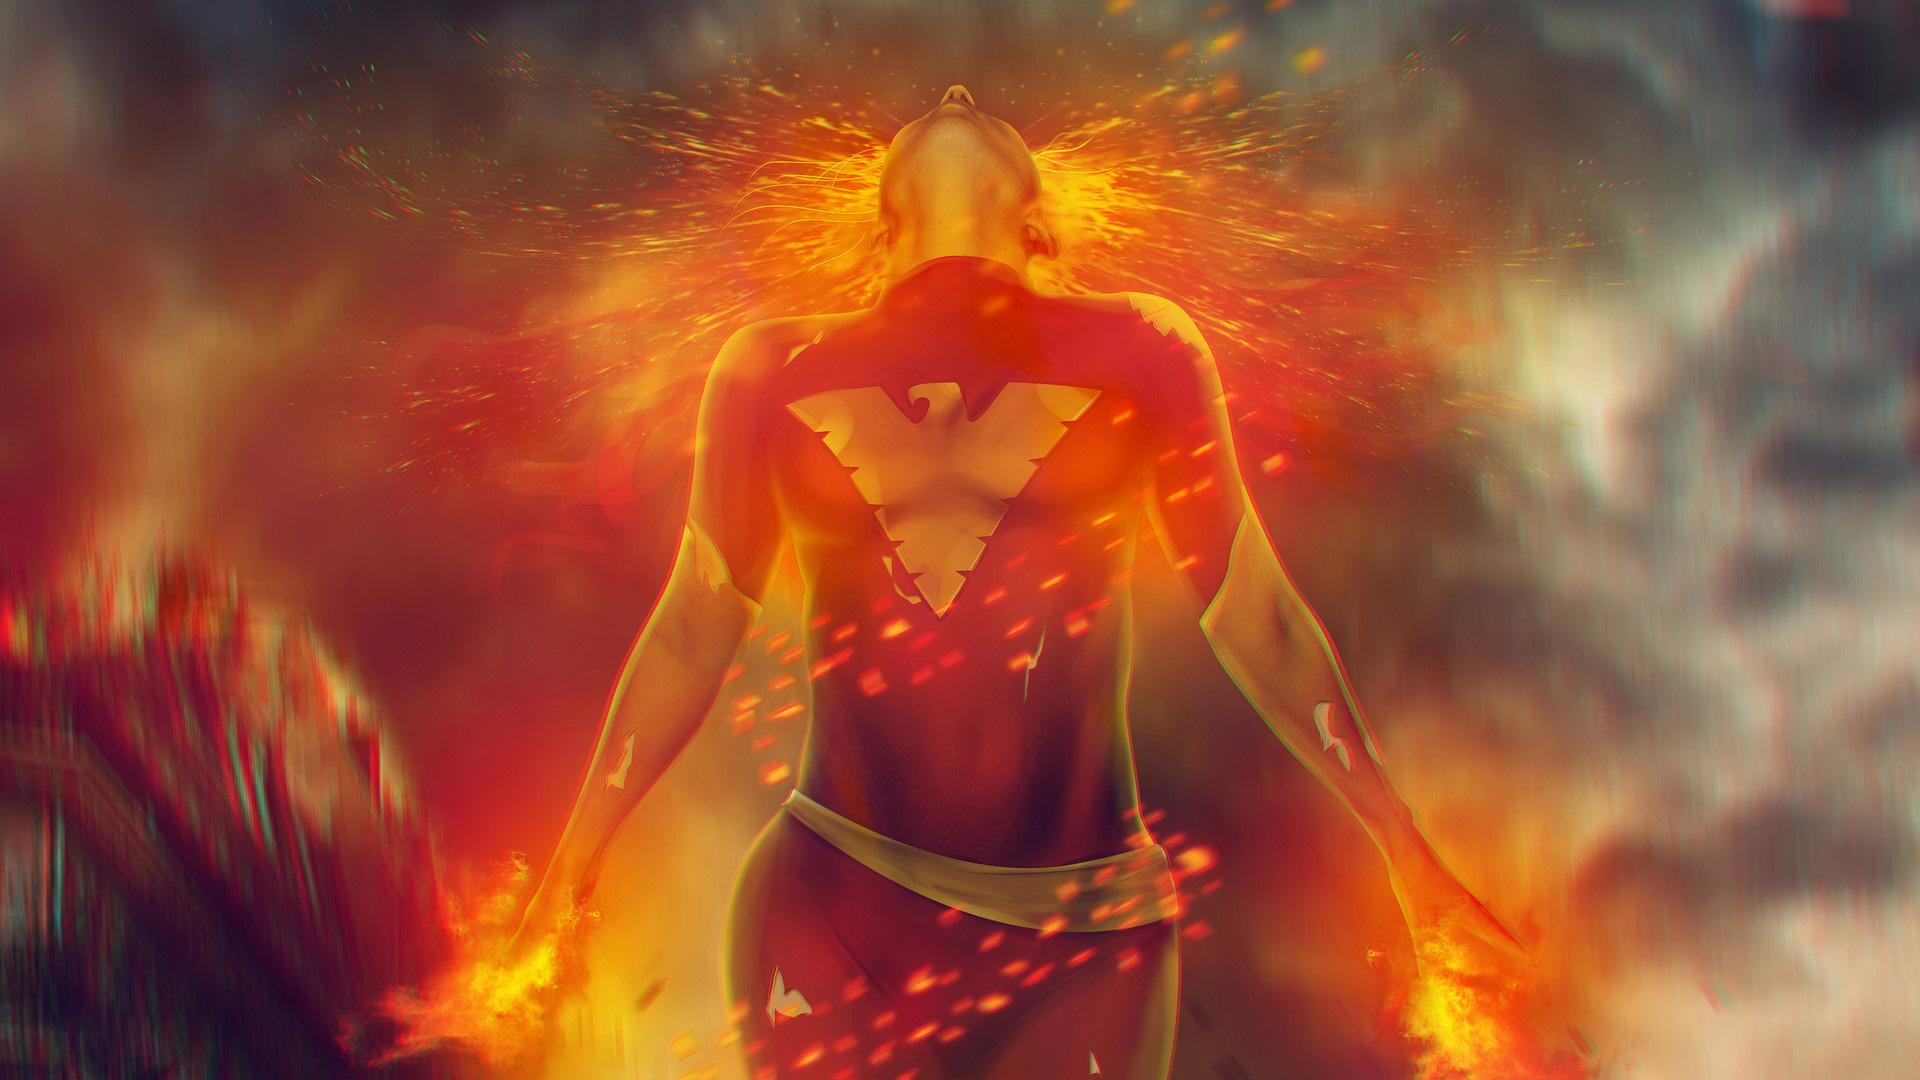 Dark Phoenix Wallpapers - Wallpaper Cave